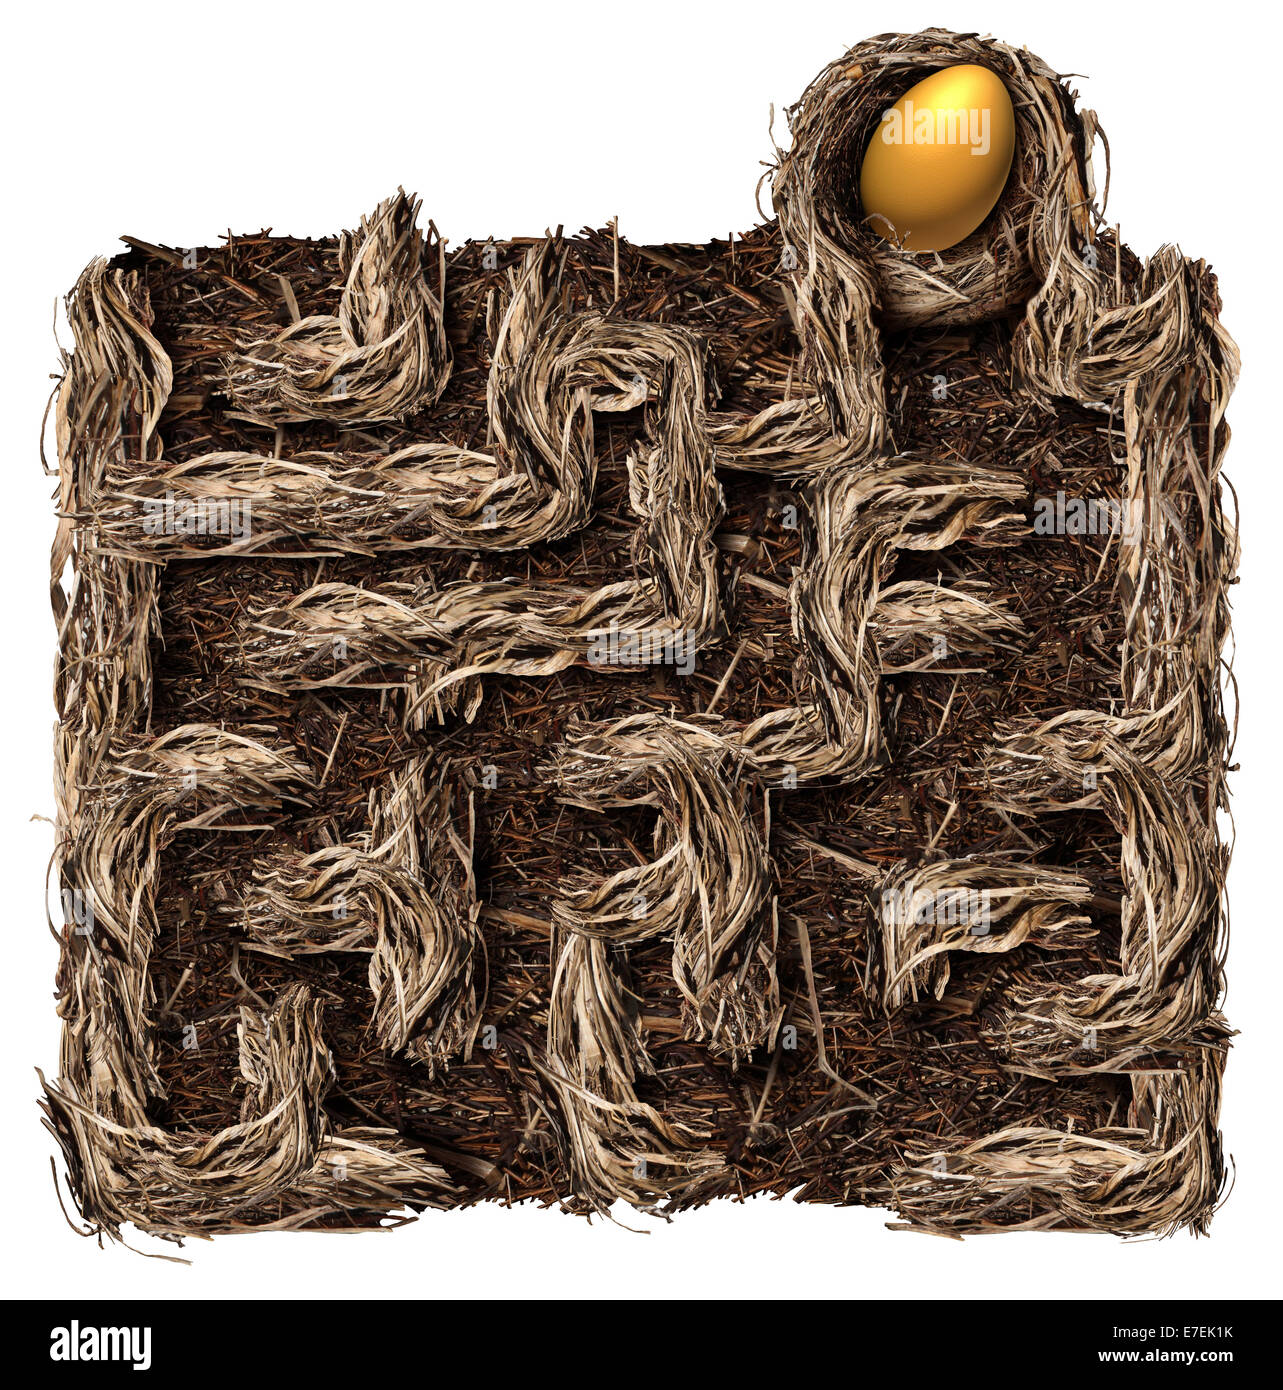 Retirement savings strategy nest egg symbol as a financial planning business concept with a bird nest shaped as - Stock Image